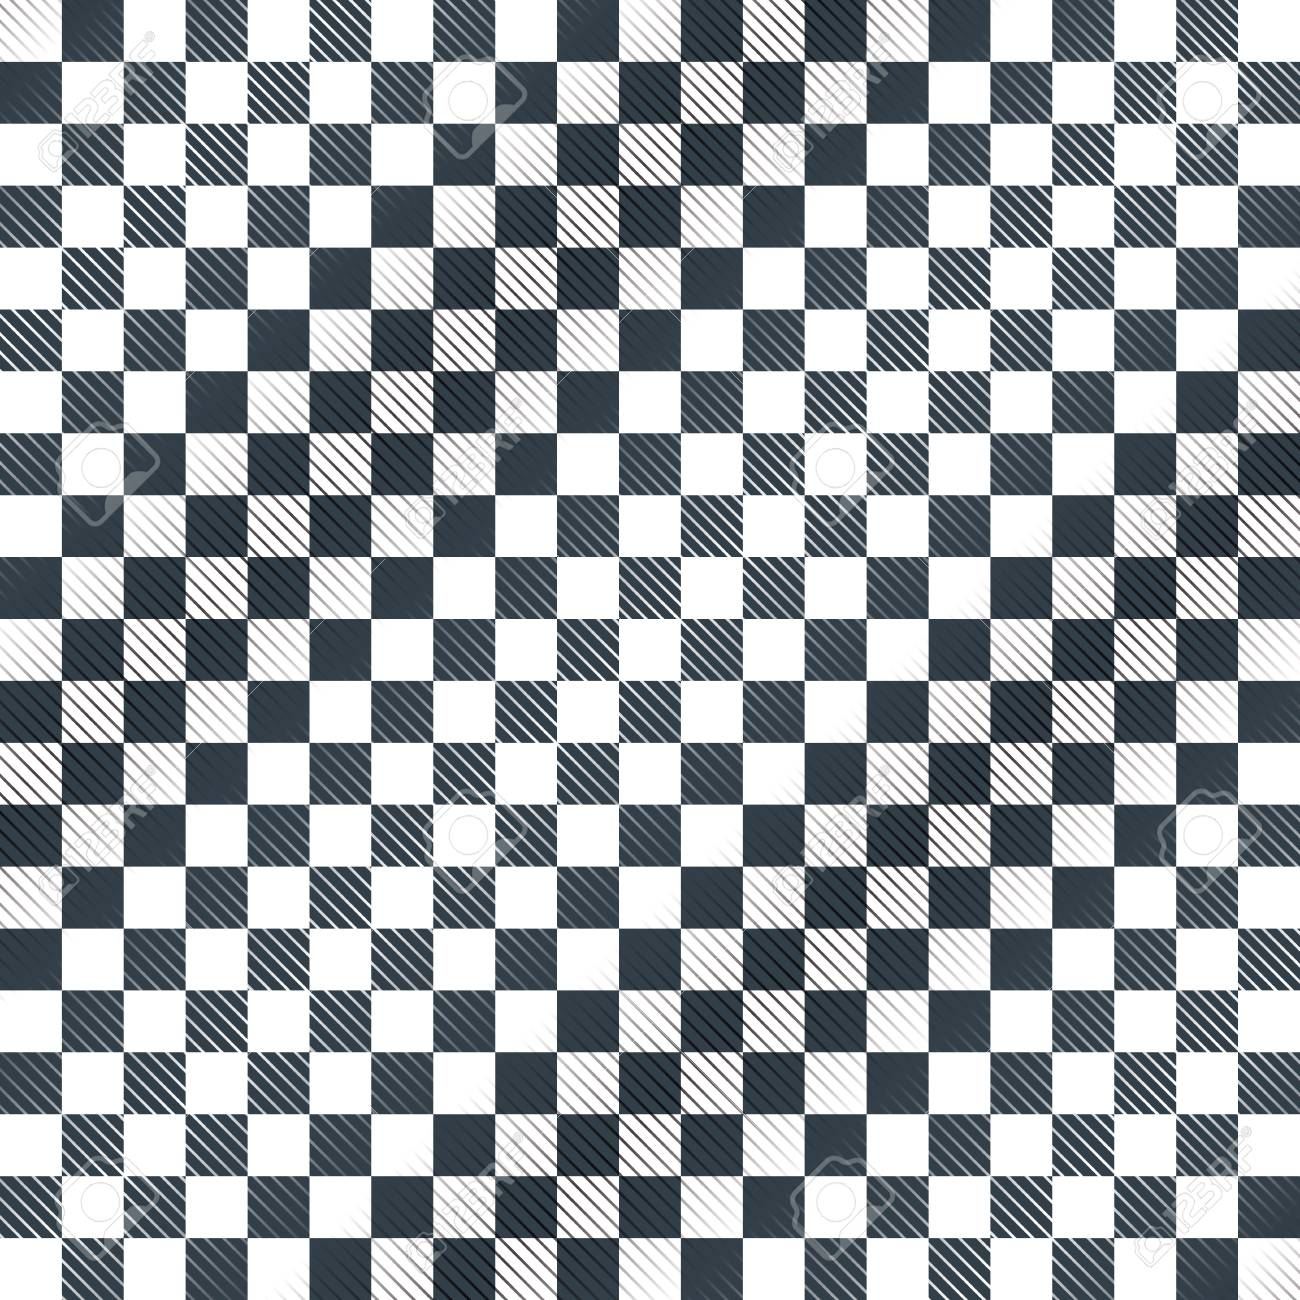 floor checkerboard or finish racing car flag vector background